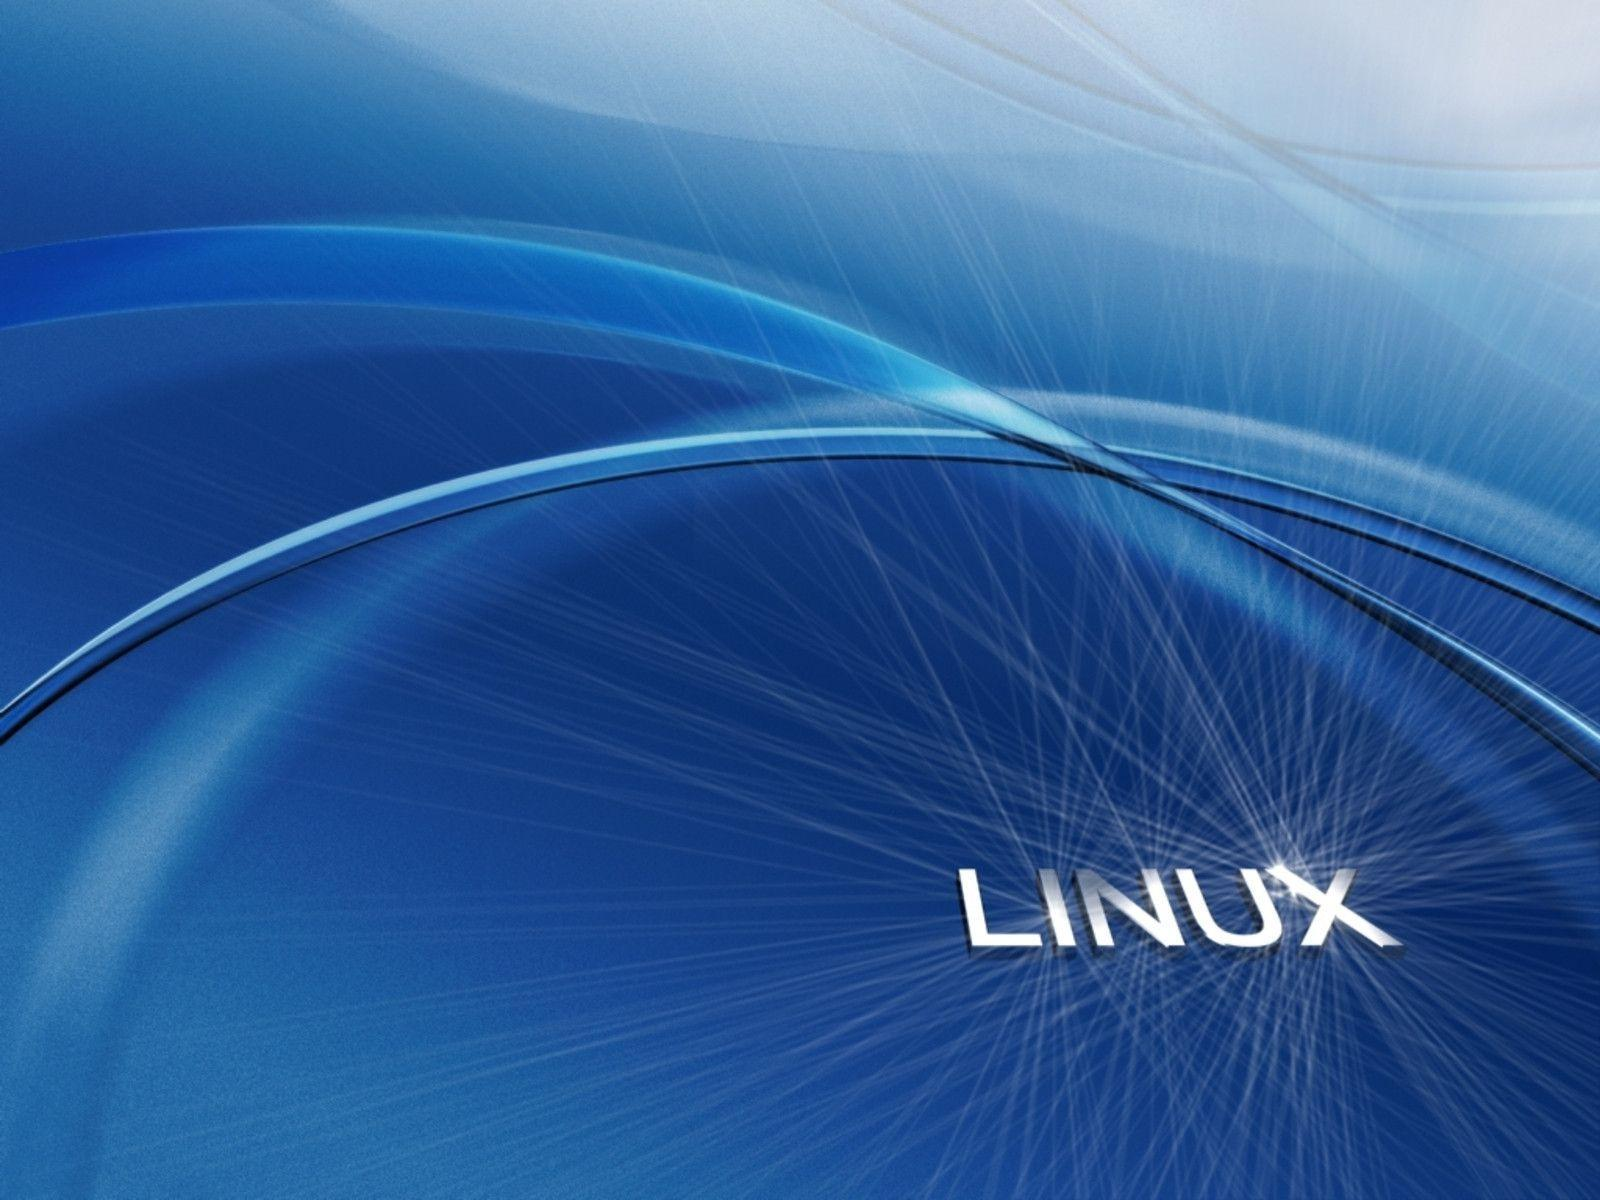 Linux Evalution Wallpapers | HD Wallpapers